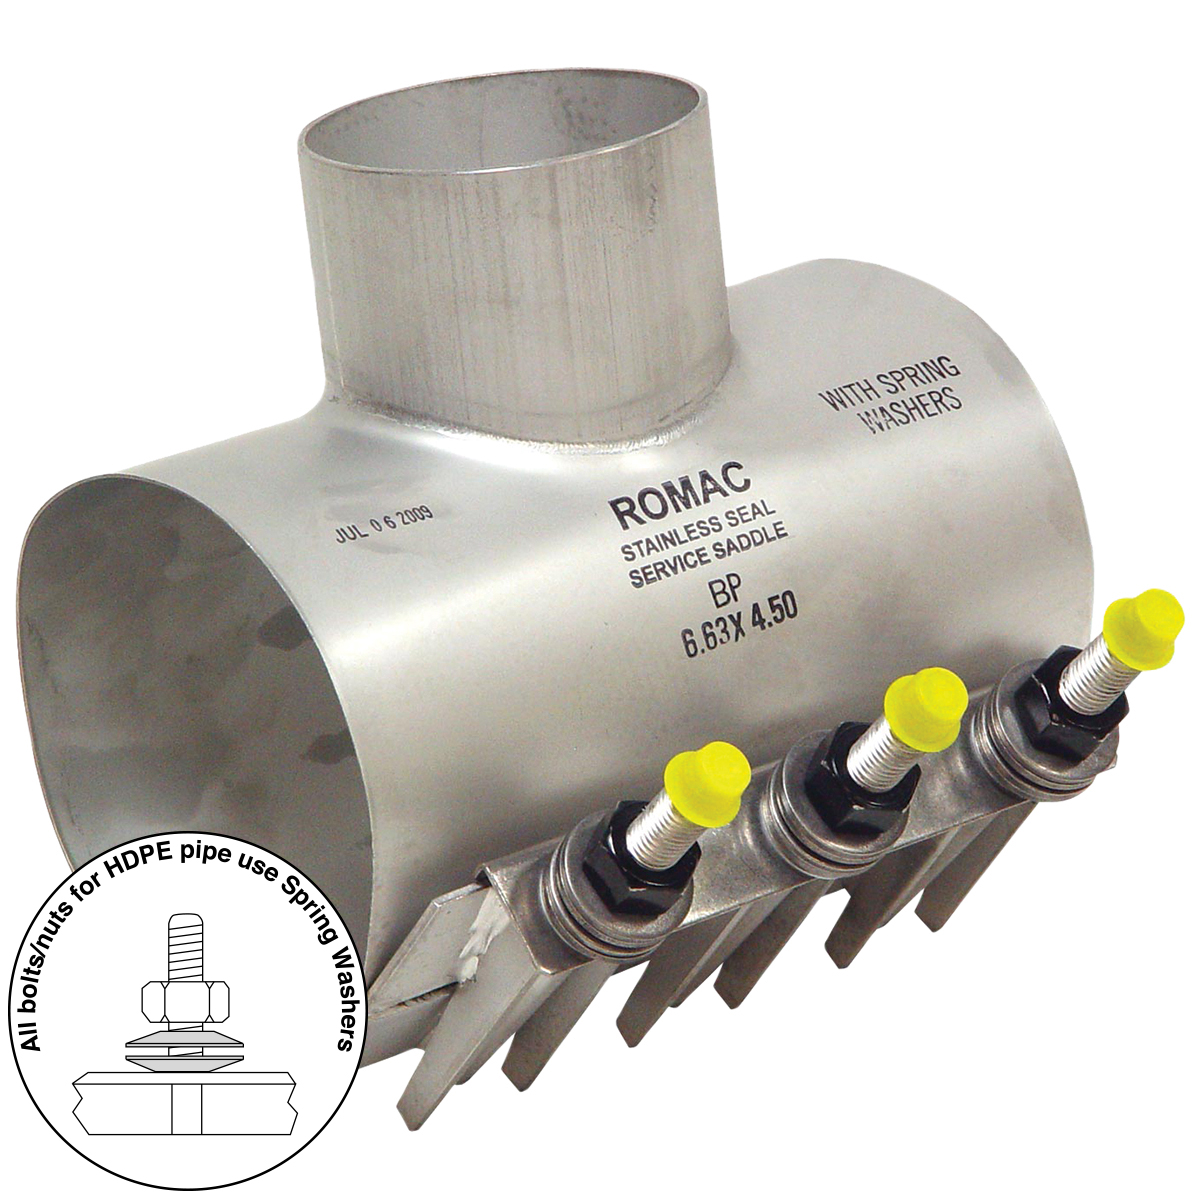 BP - Stainless steel sewer saddle for use on HDPE pipeNominal Sizes6 - 12 inchesWorking PressureUp to 10 psiPipe CompatibilityHDPE pipe with a minimum wall thickness of SDR32.5